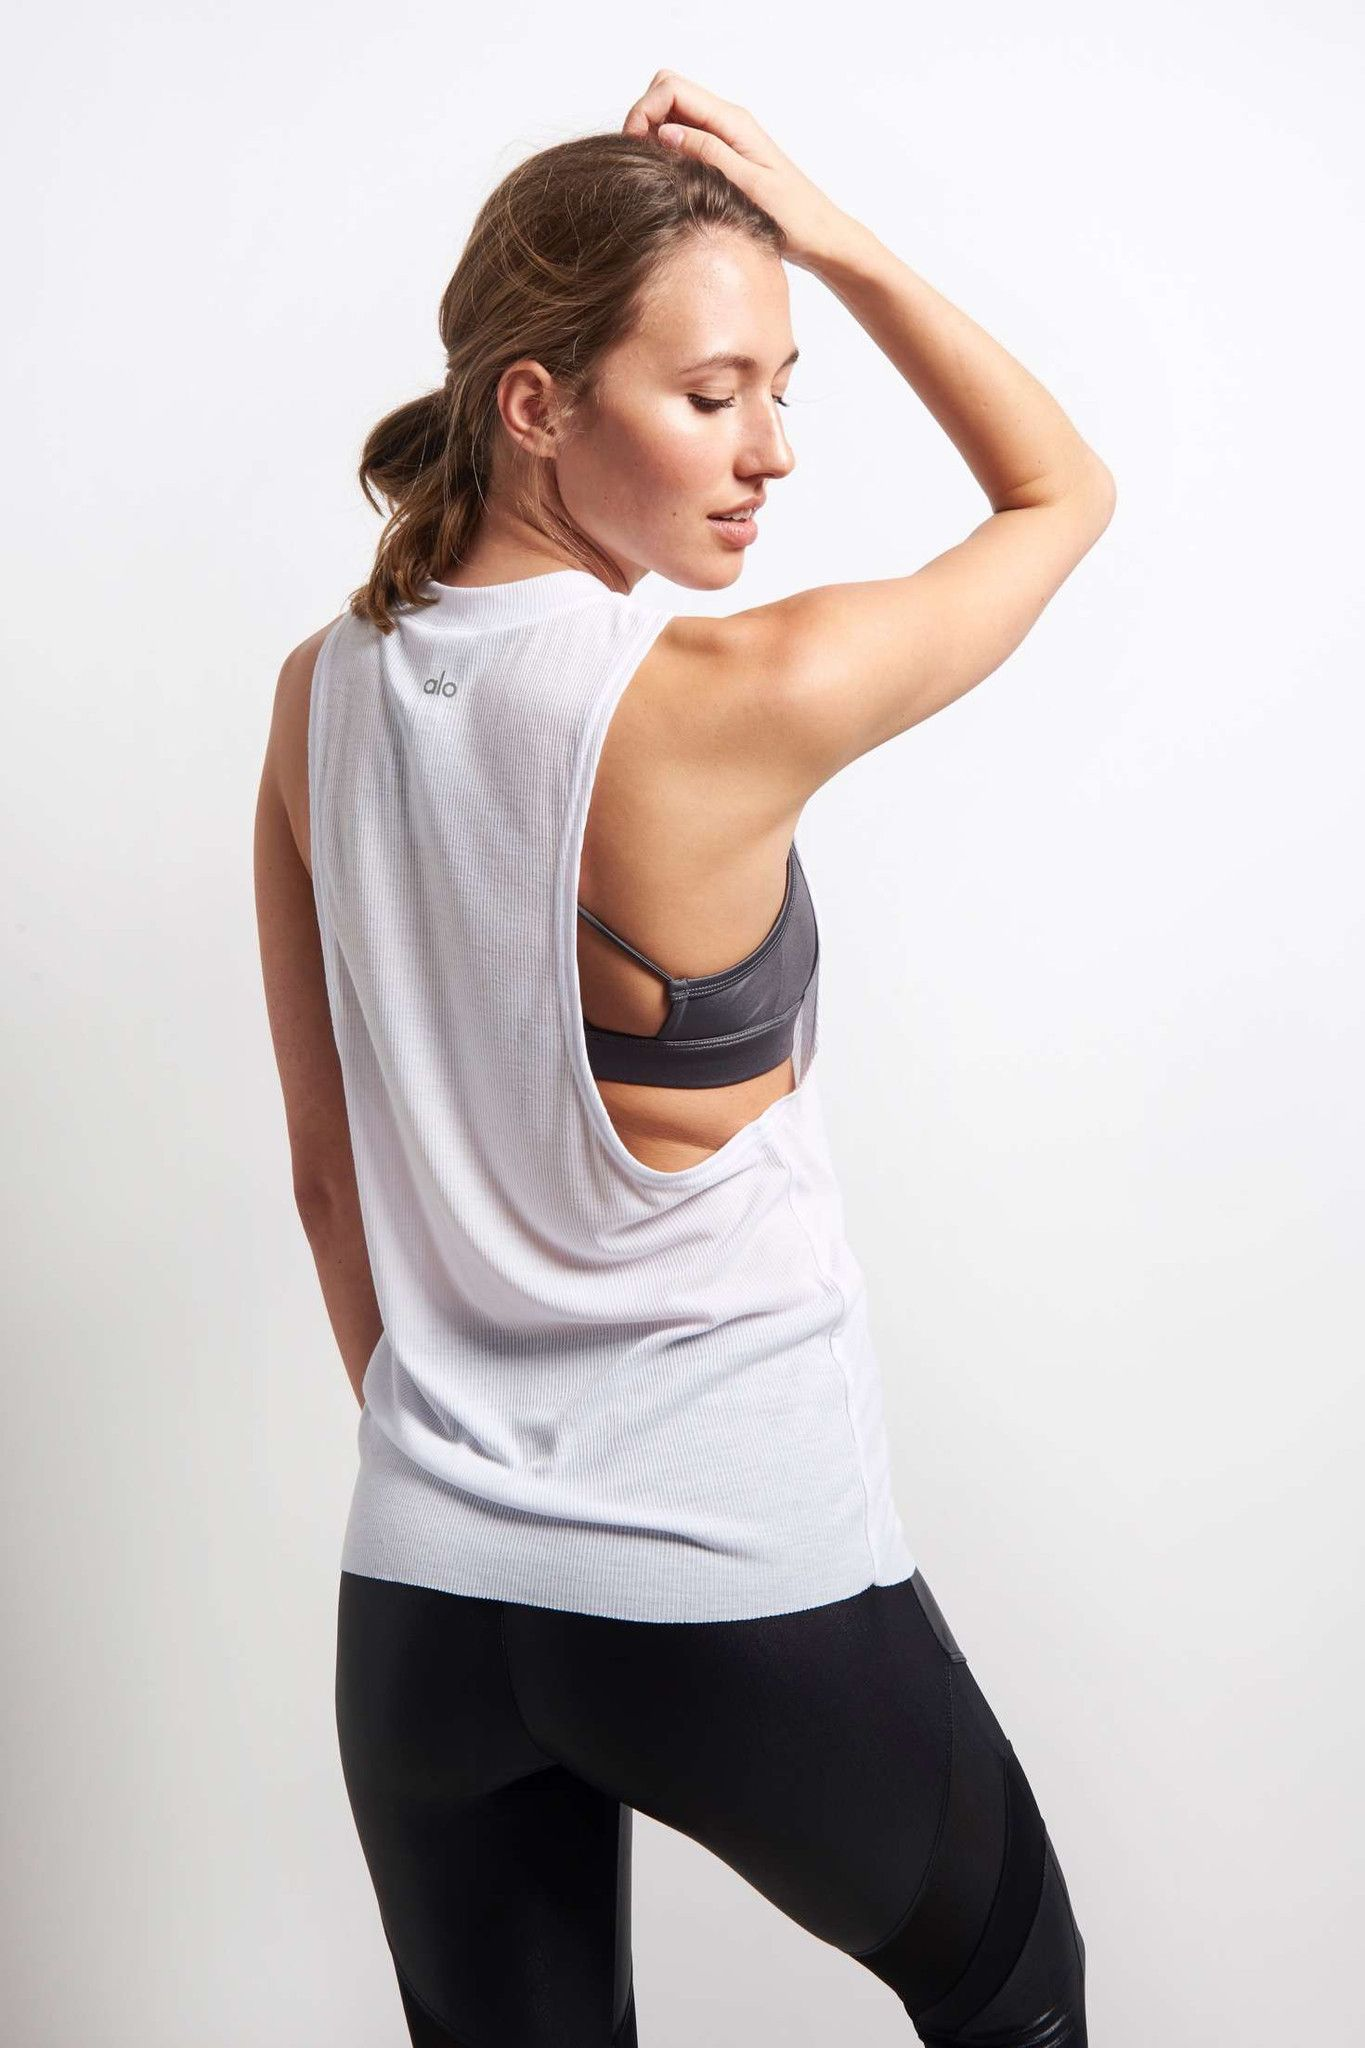 Alo Yoga Heat Wave Tank - White image 3 - The Sports Edit